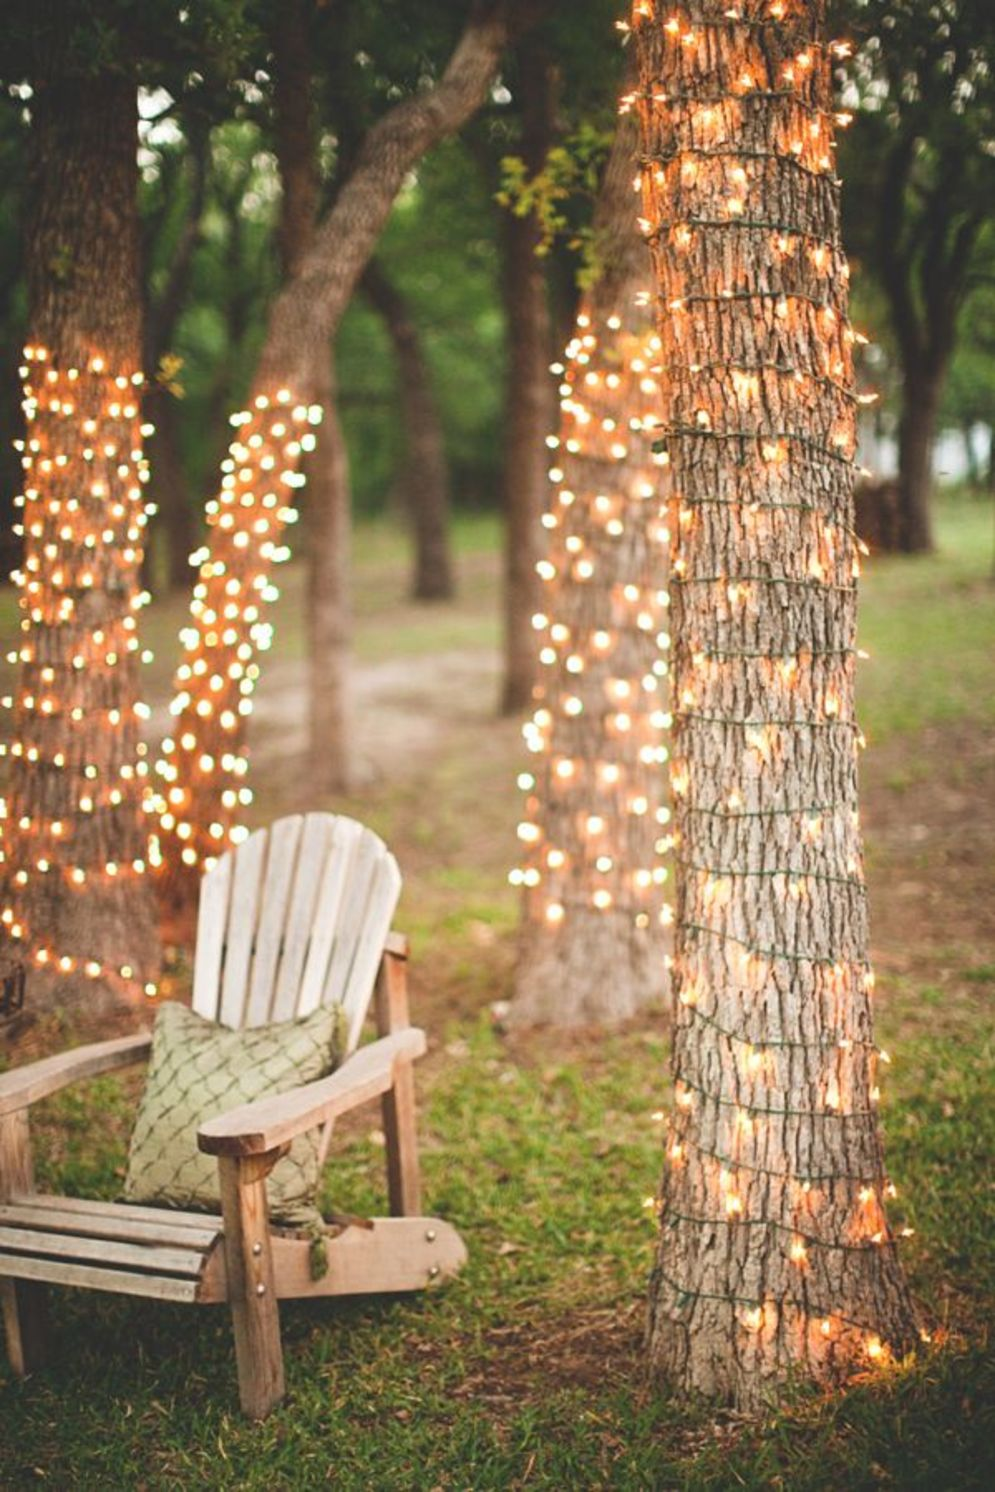 Beautiful garden lighting ideas with ground level ambient light giving luxurious resorts look Image 26